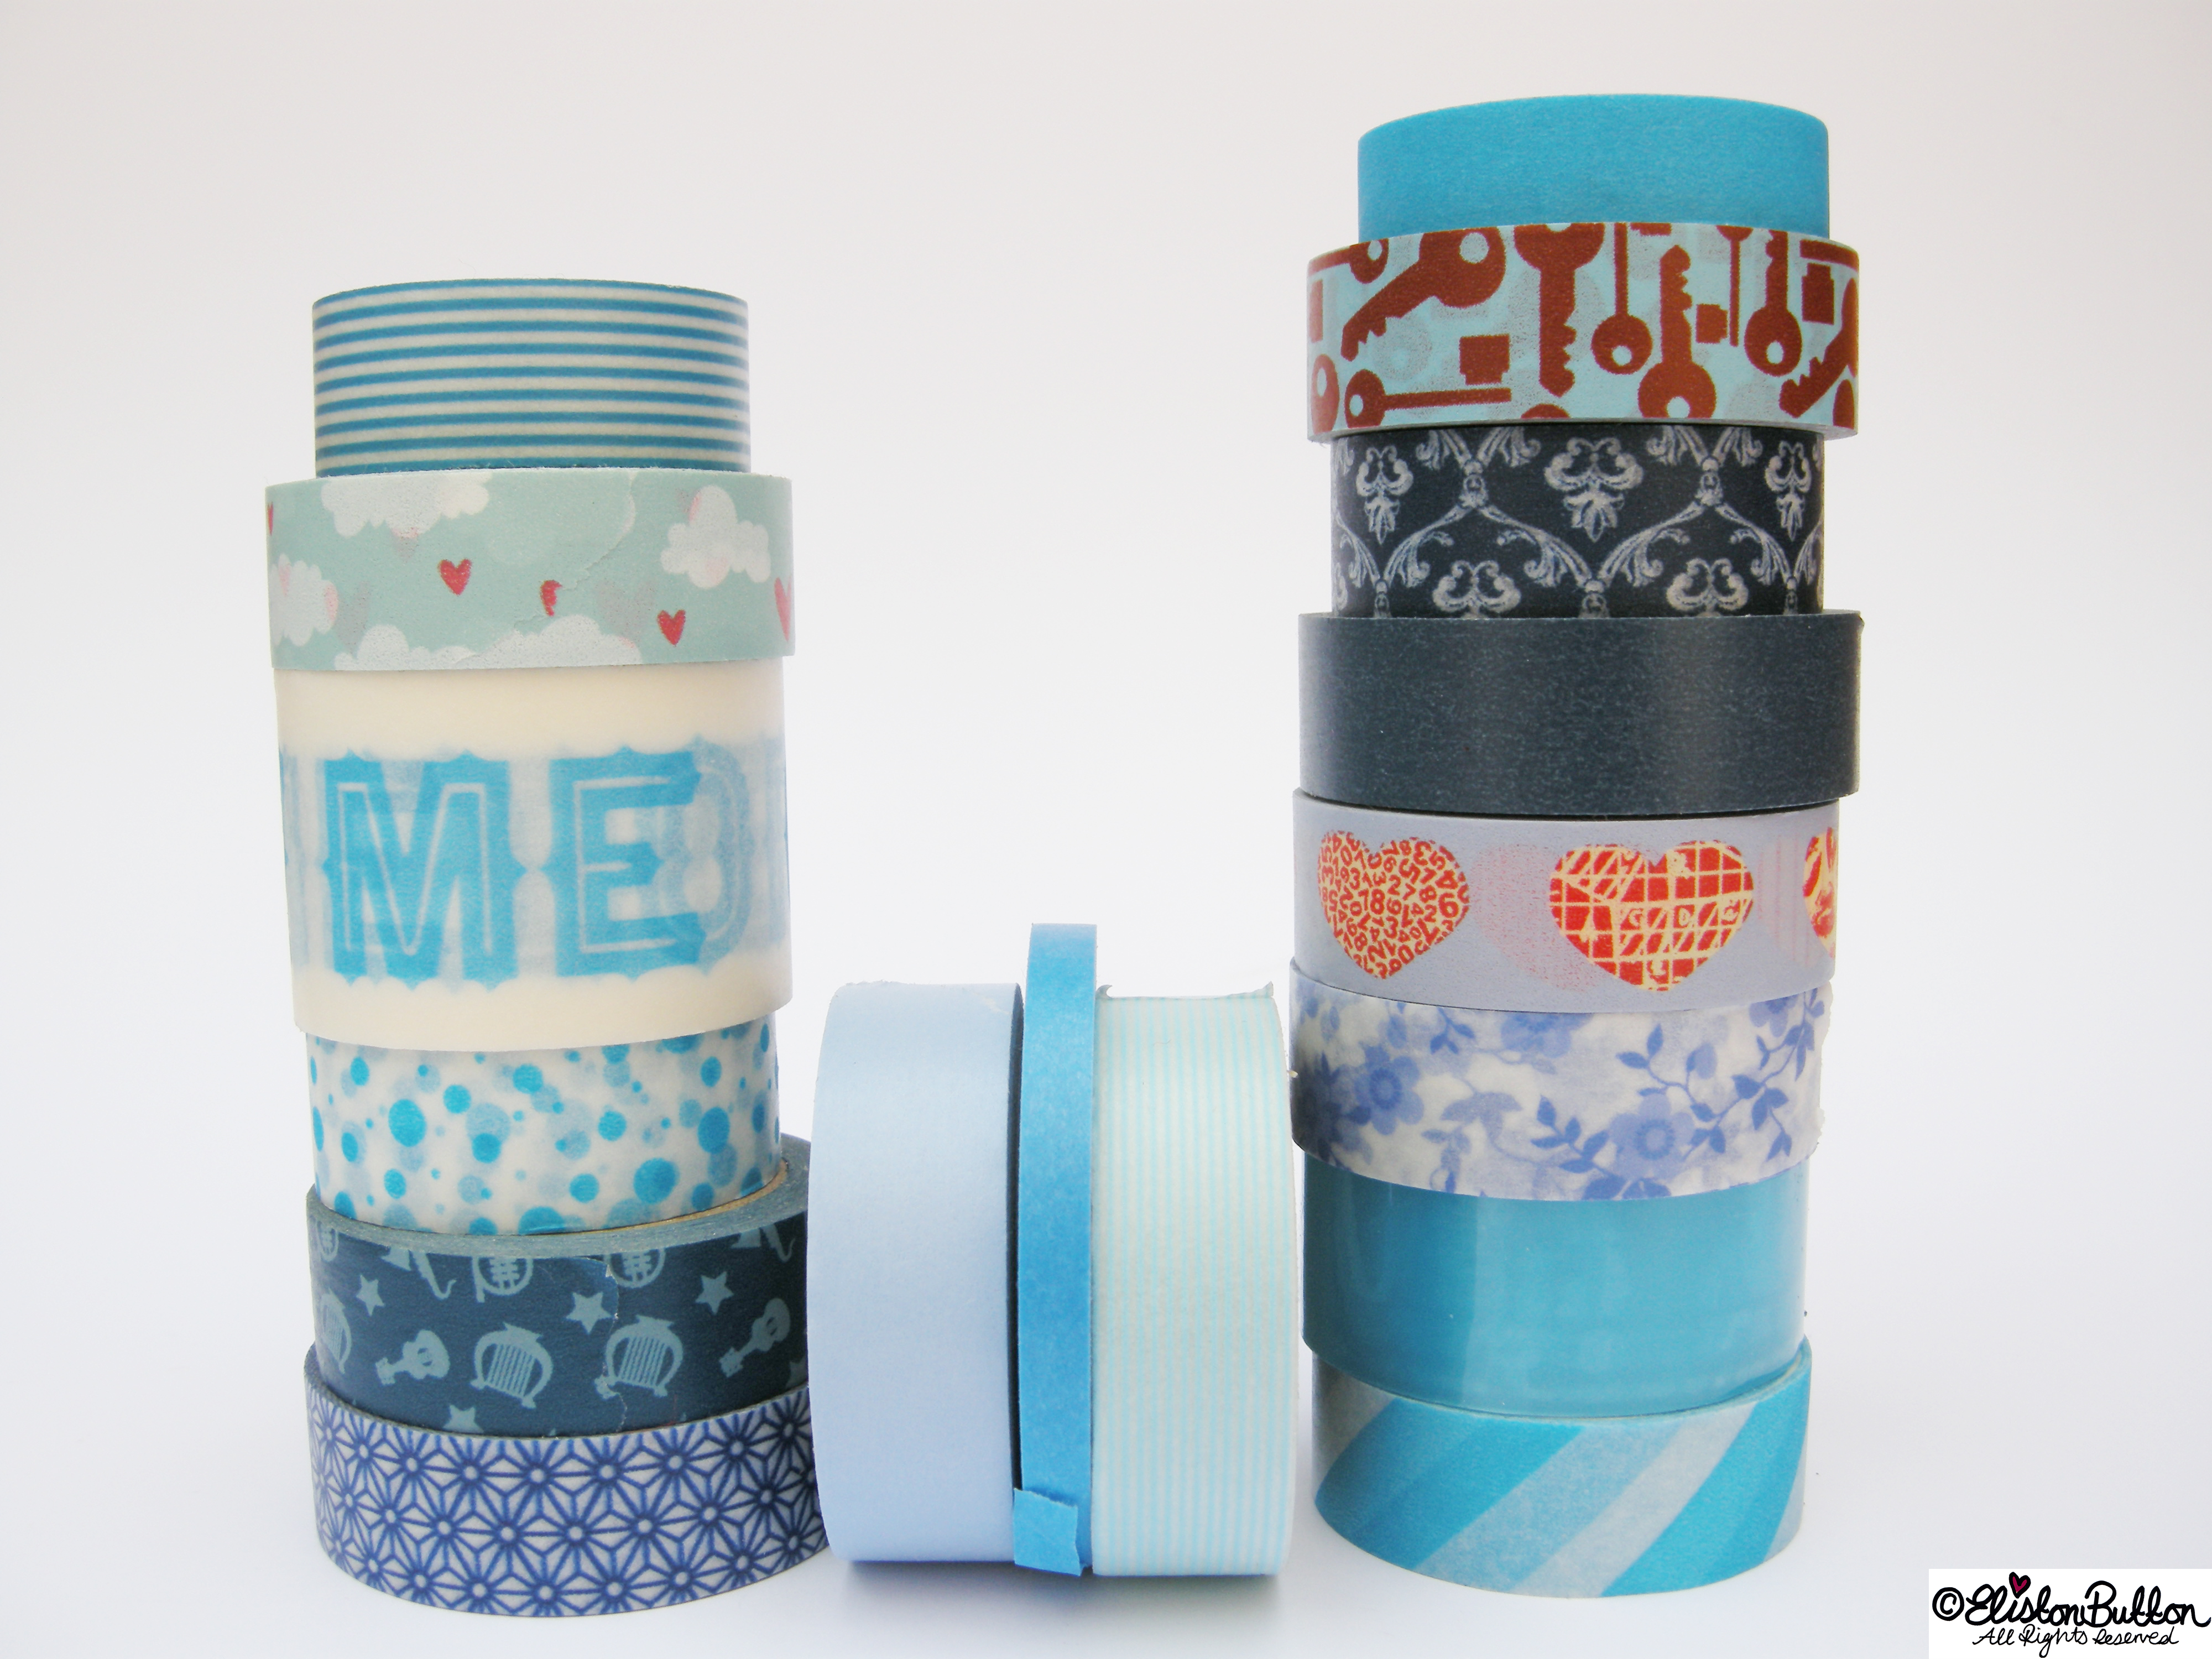 Beautiful Blues Piles of Washi Tape Rolls - My Washi Tape Collection at www.elistonbutton.com - Eliston Button - That Crafty Kid – Art, Design, Craft & Adventure.